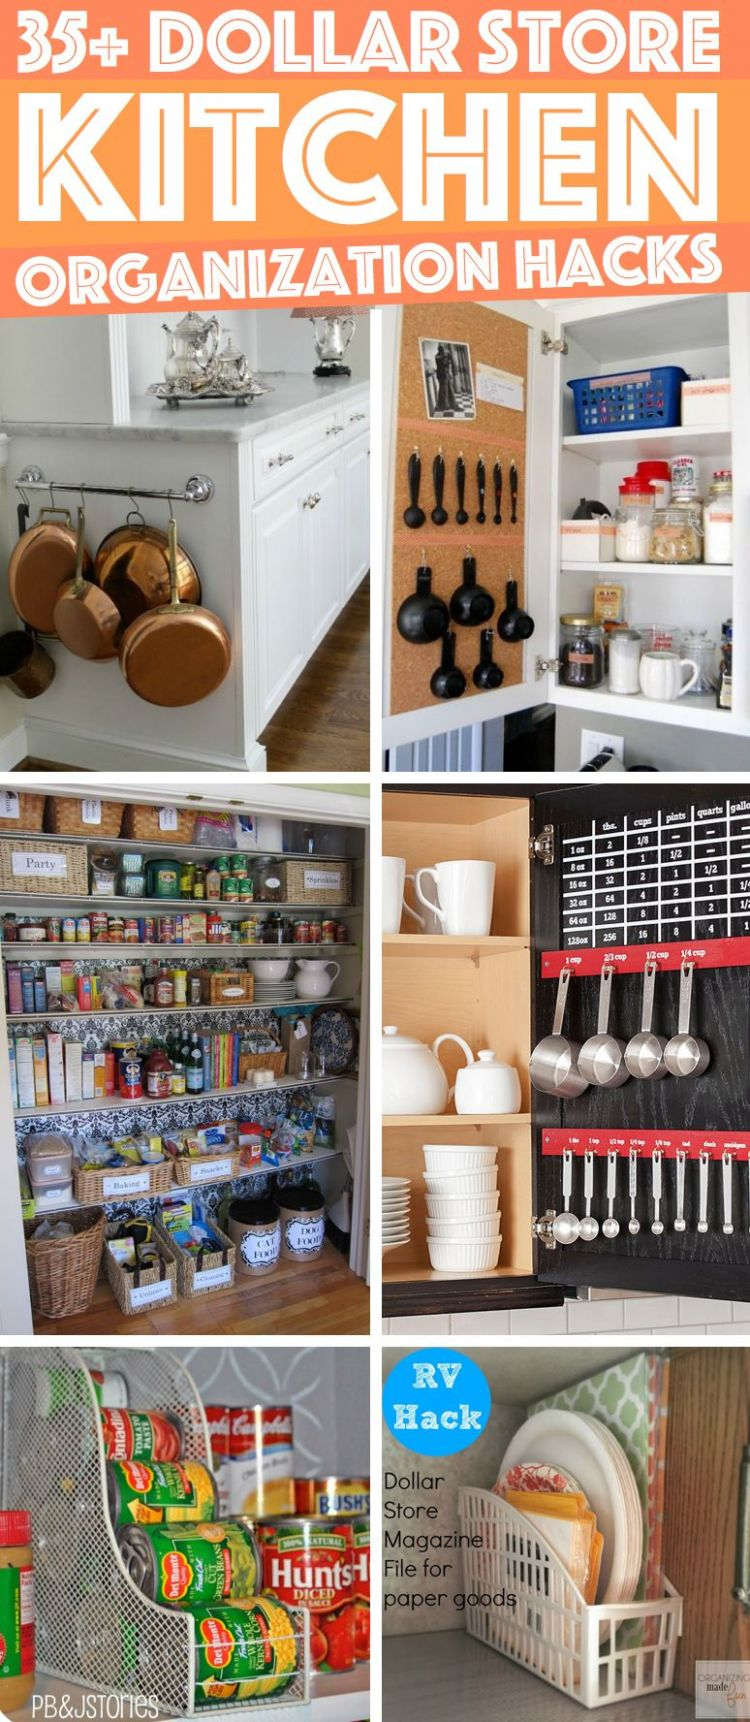 12 Dollar Store Kitchen Organization Hacks You Can Pull Off Like a ...